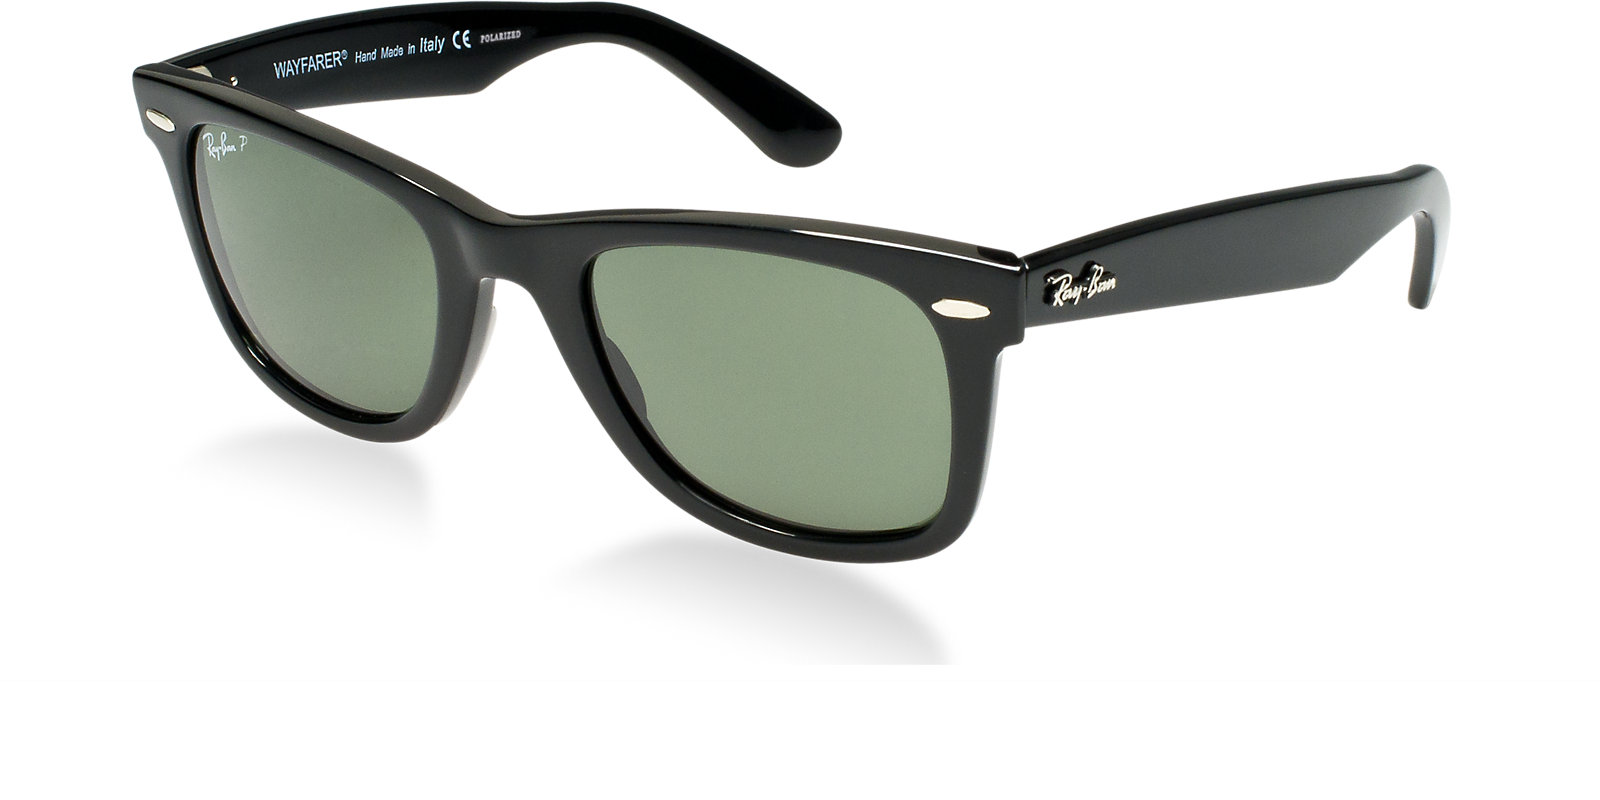 rb2140 90158 black polarized angle. Previous  Next. Previous  Next. RAY-BAN  RB2140 901 58 BLACK POLARIZED CLASSIC WAYFARER SUNGLASSES 2b1b5bfd60